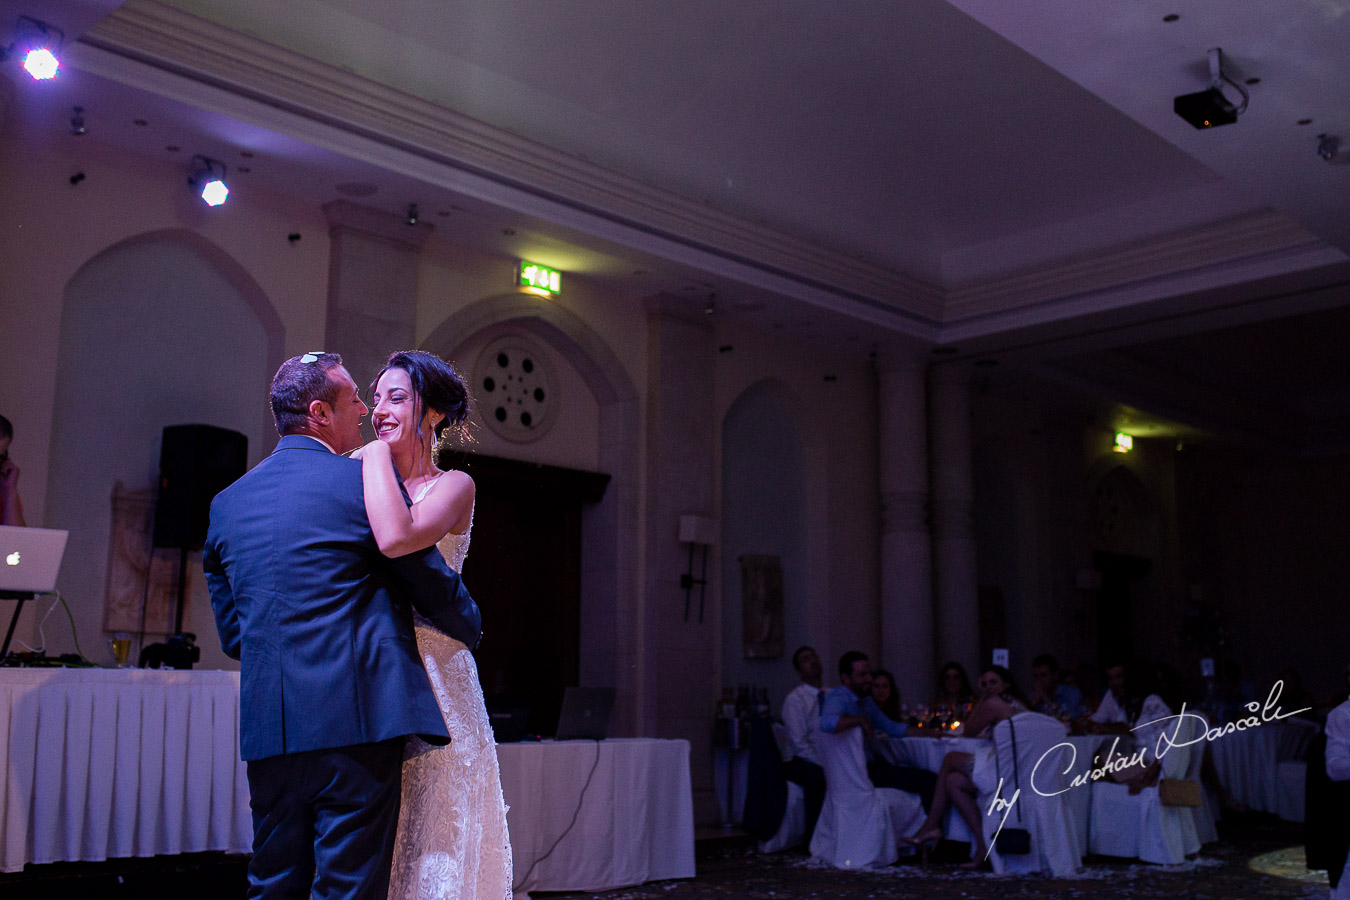 Wedding at Aphrodite Hills in Cyprus - 84